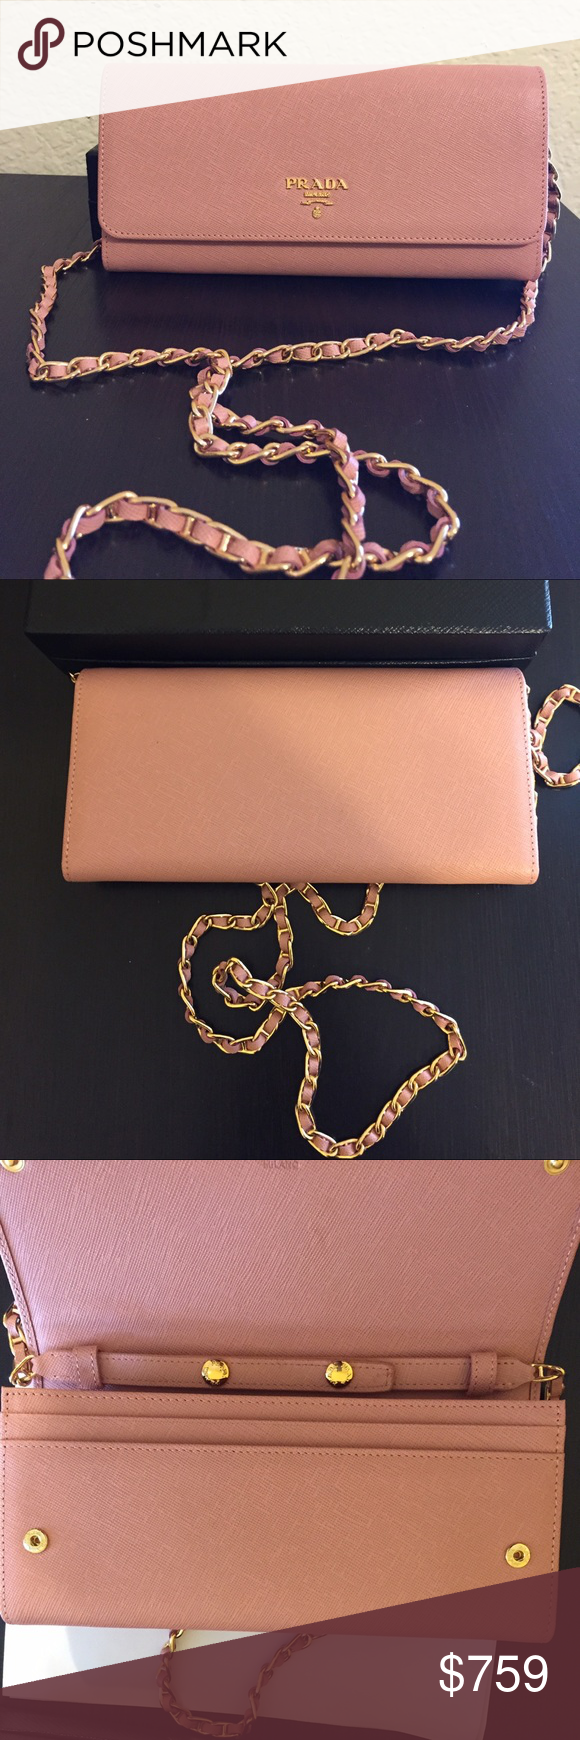 32c5c33f7738 Authentic Prada Saffiano Wallet on Chain Pale Pink Prada saffiano leather  wallet on chain Pale pink Condition: brand new in box •Golden hardware.